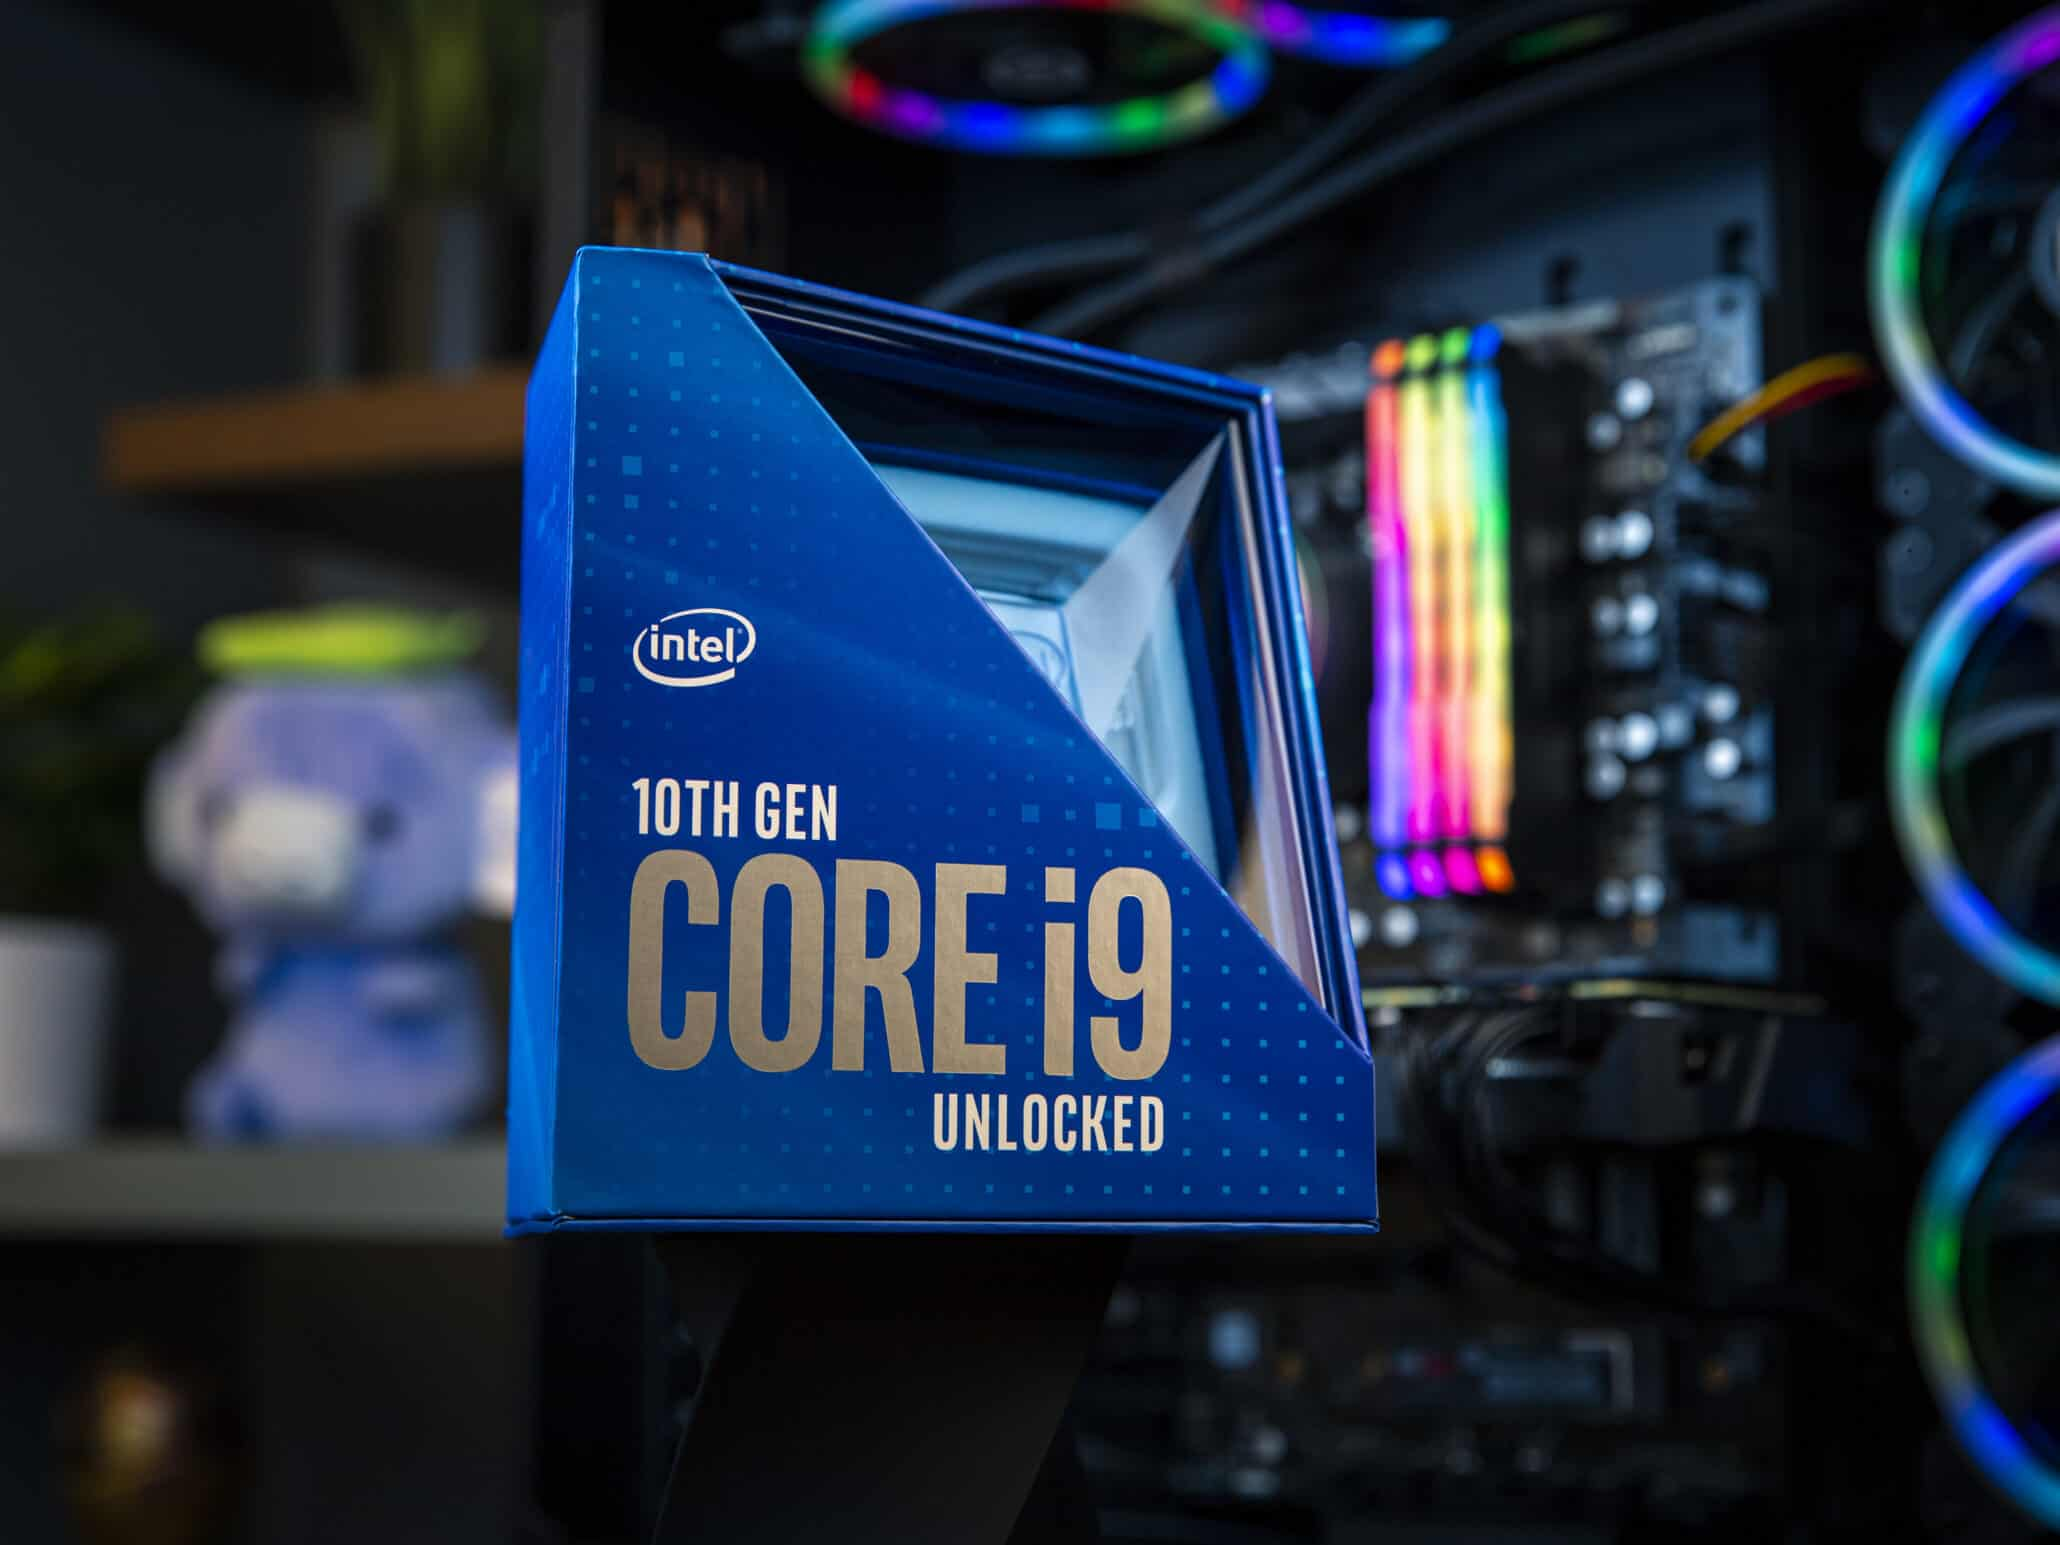 Intel 10th gen comet lake-s core i9-10900K is very hot